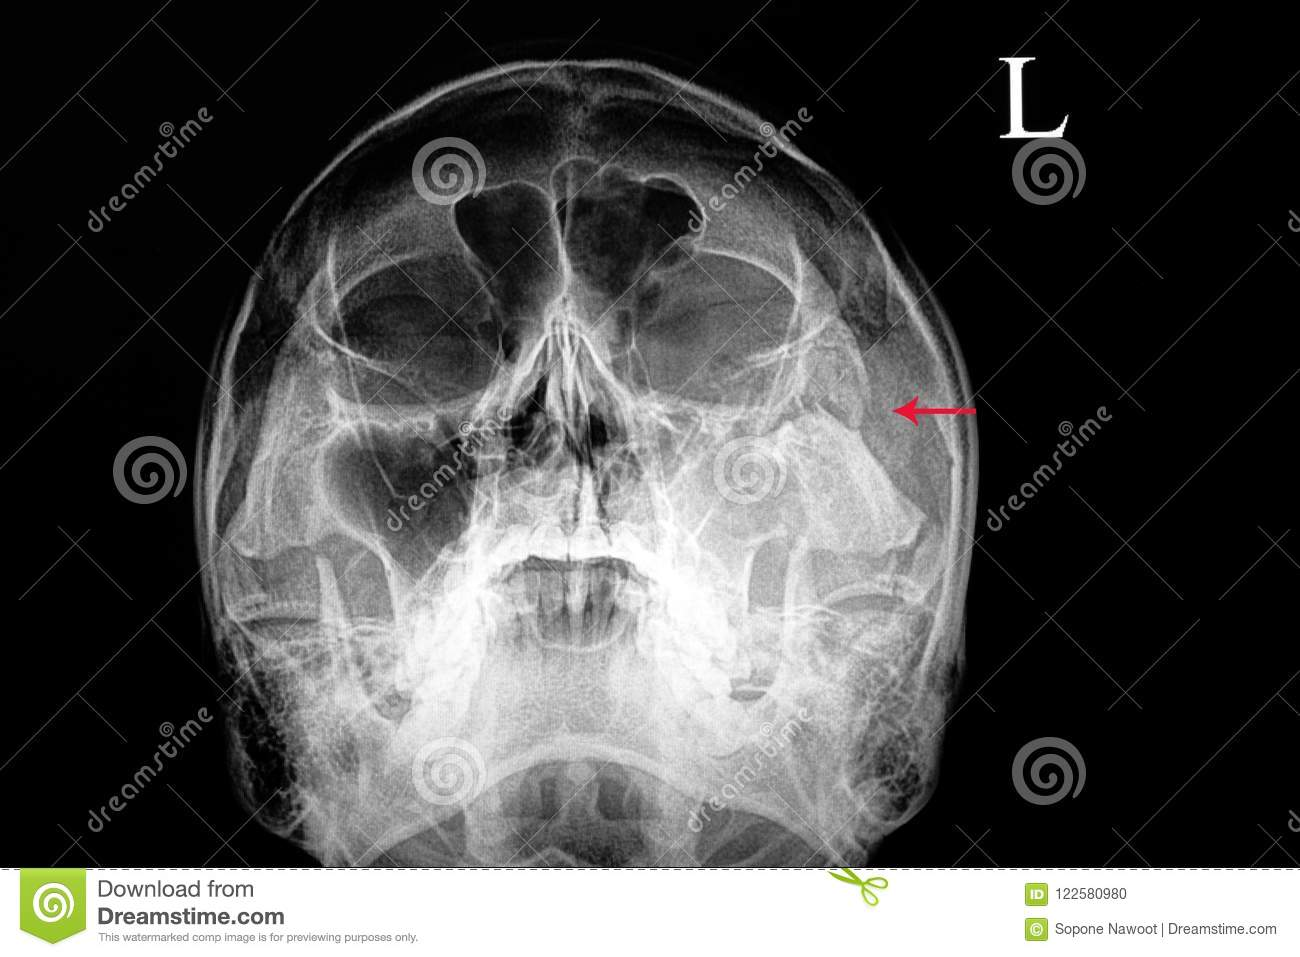 Traumatic Fracture Of Zygomatic Bone Stock Photo Image Of Patient